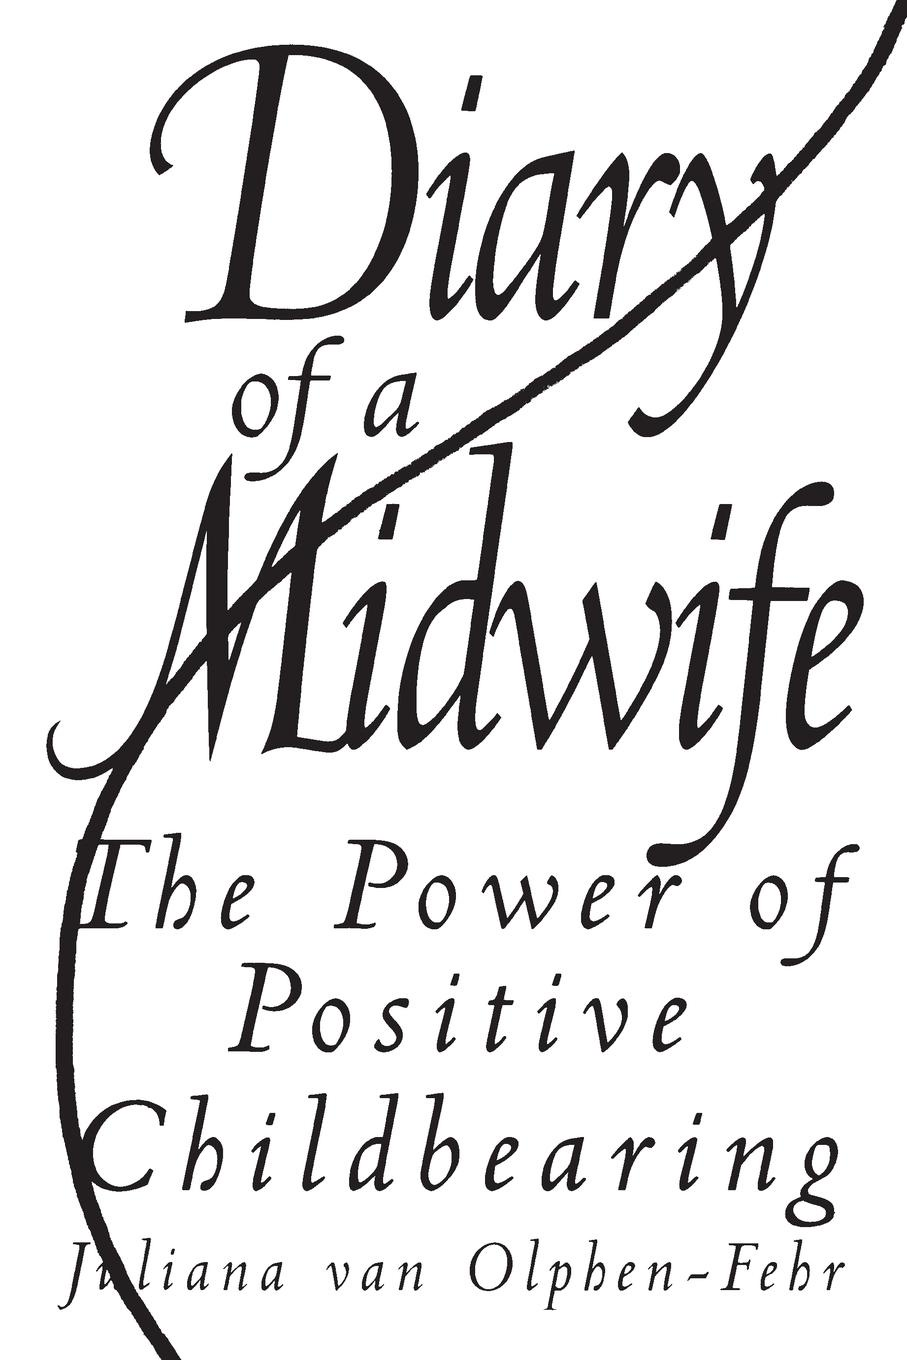 Juliana van Olphen-Fehr Diary of a Midwife. The Power of Positive Childbearing emma derbyshire nutrition in the childbearing years